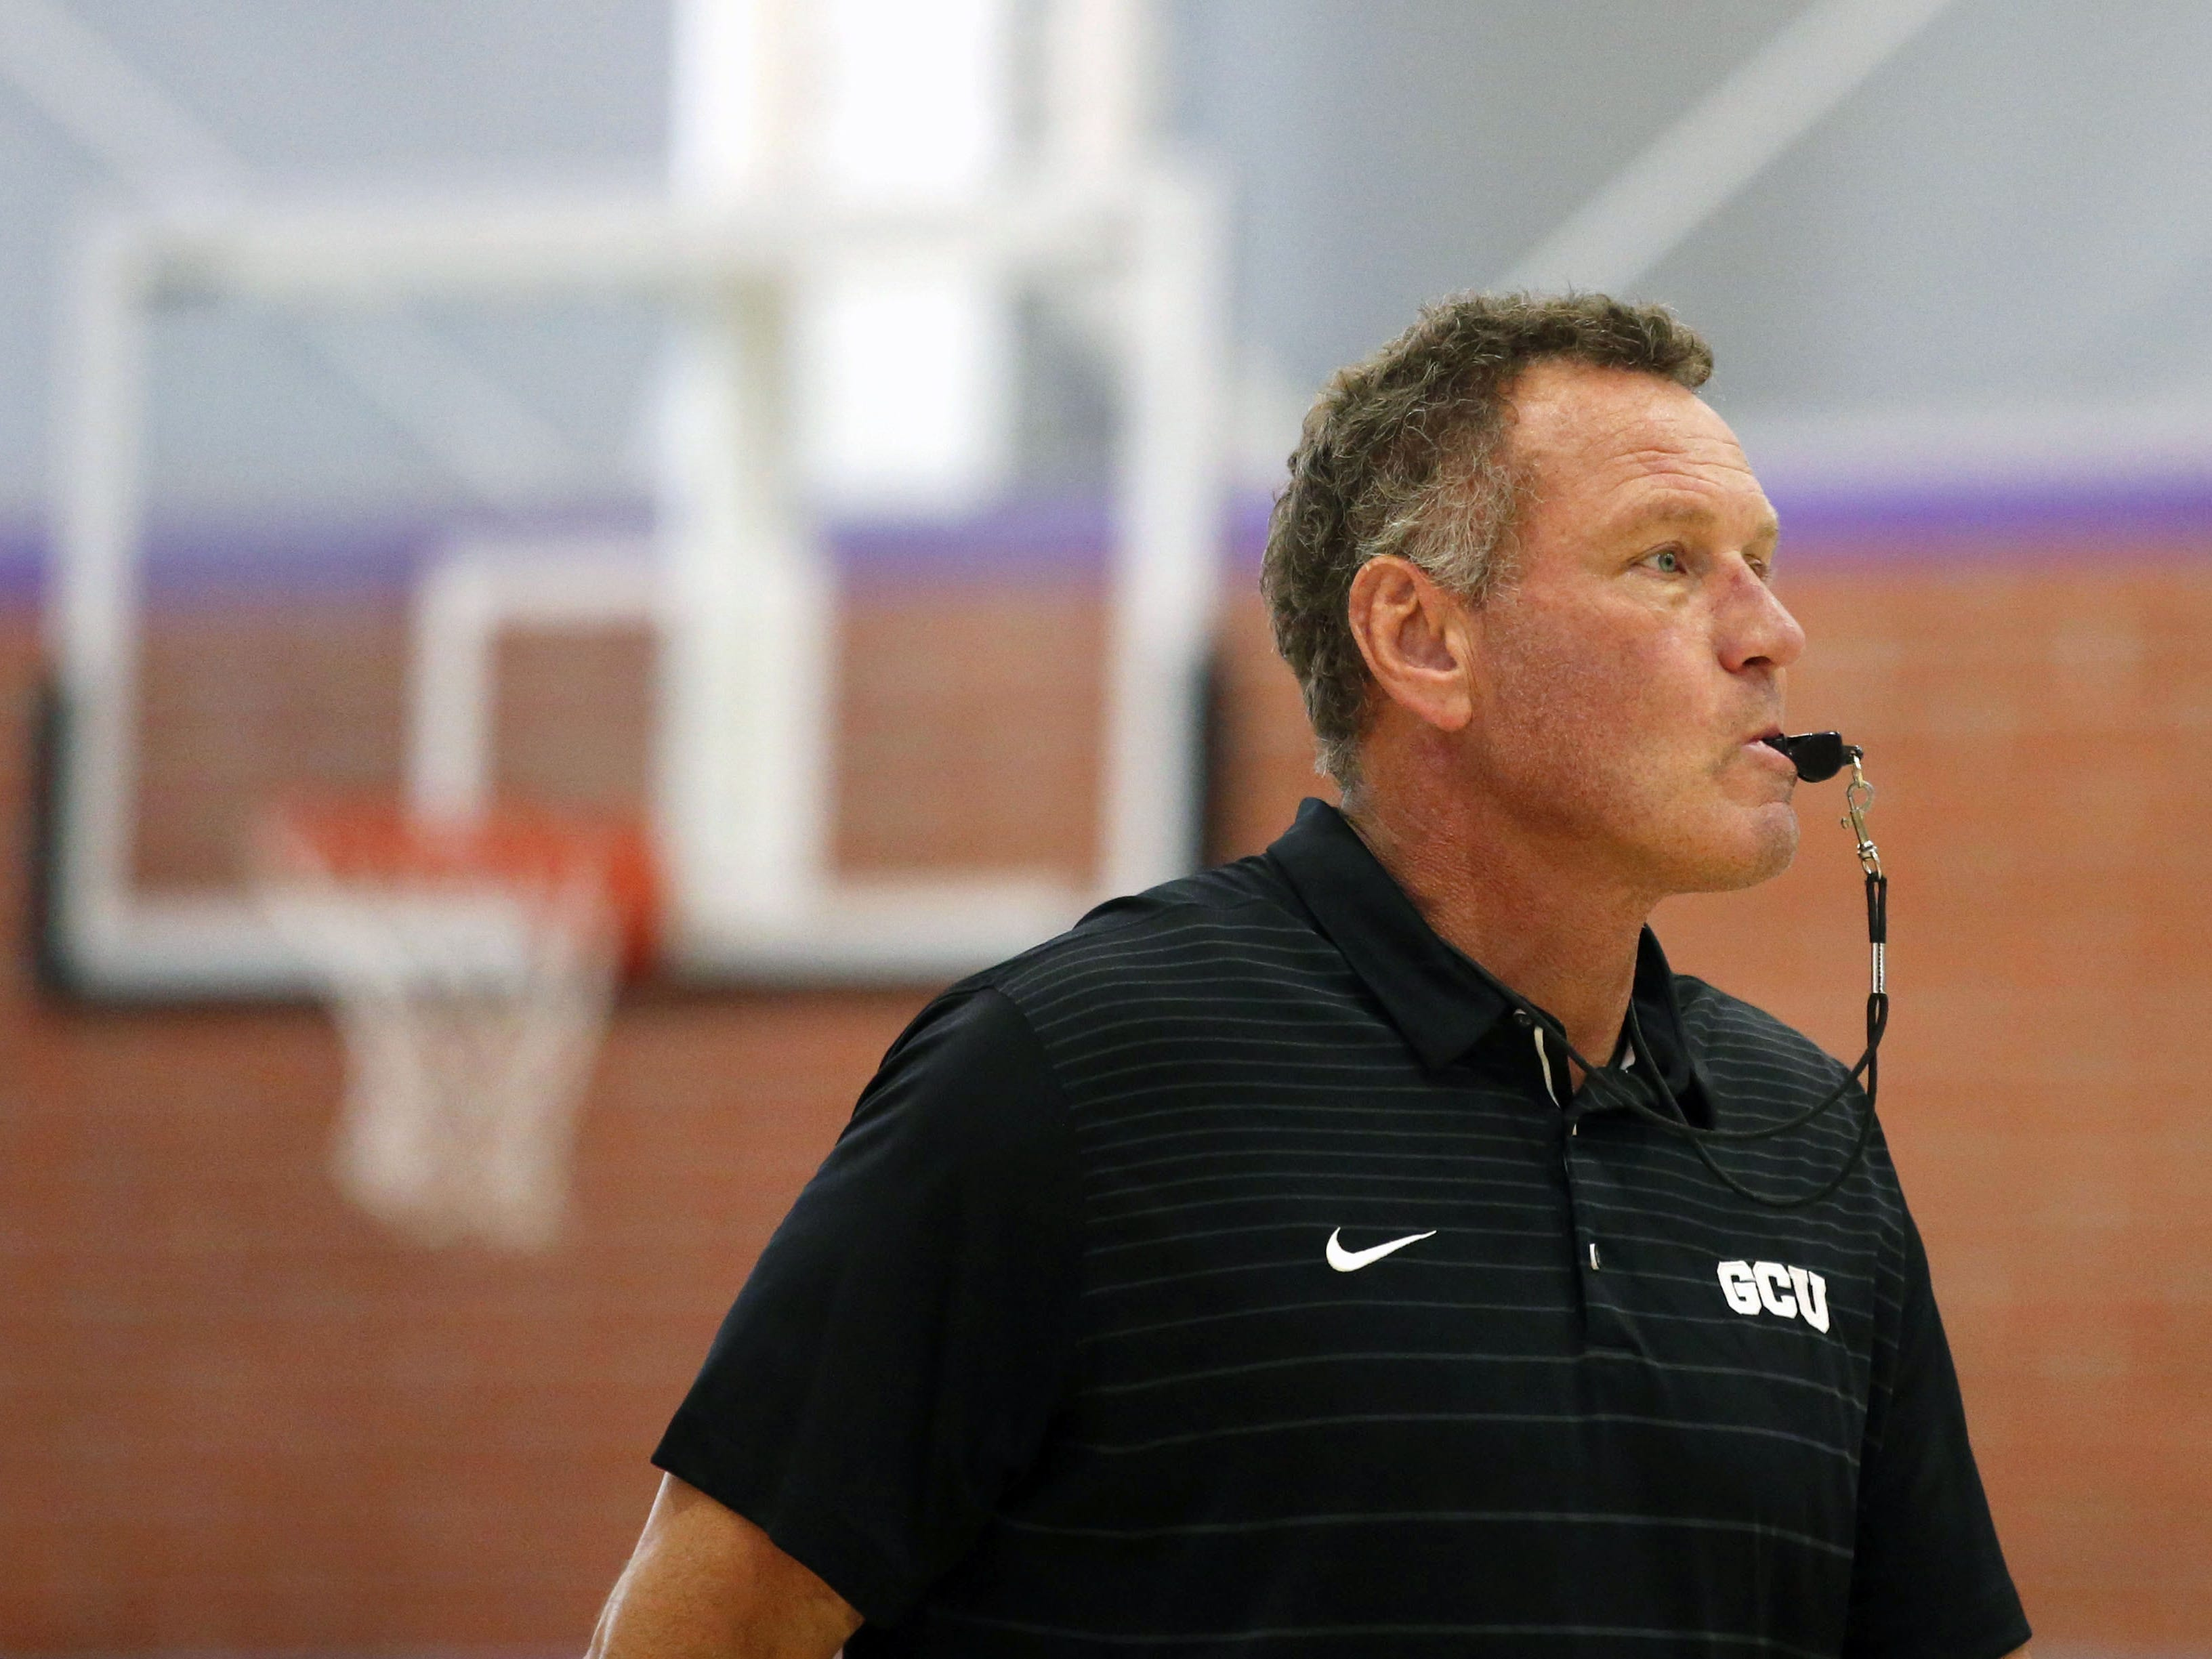 Grand Canyon University head basketball coach Dan Majerle instructs his team during practice in the gym in Phoenix on September 26, 2018.